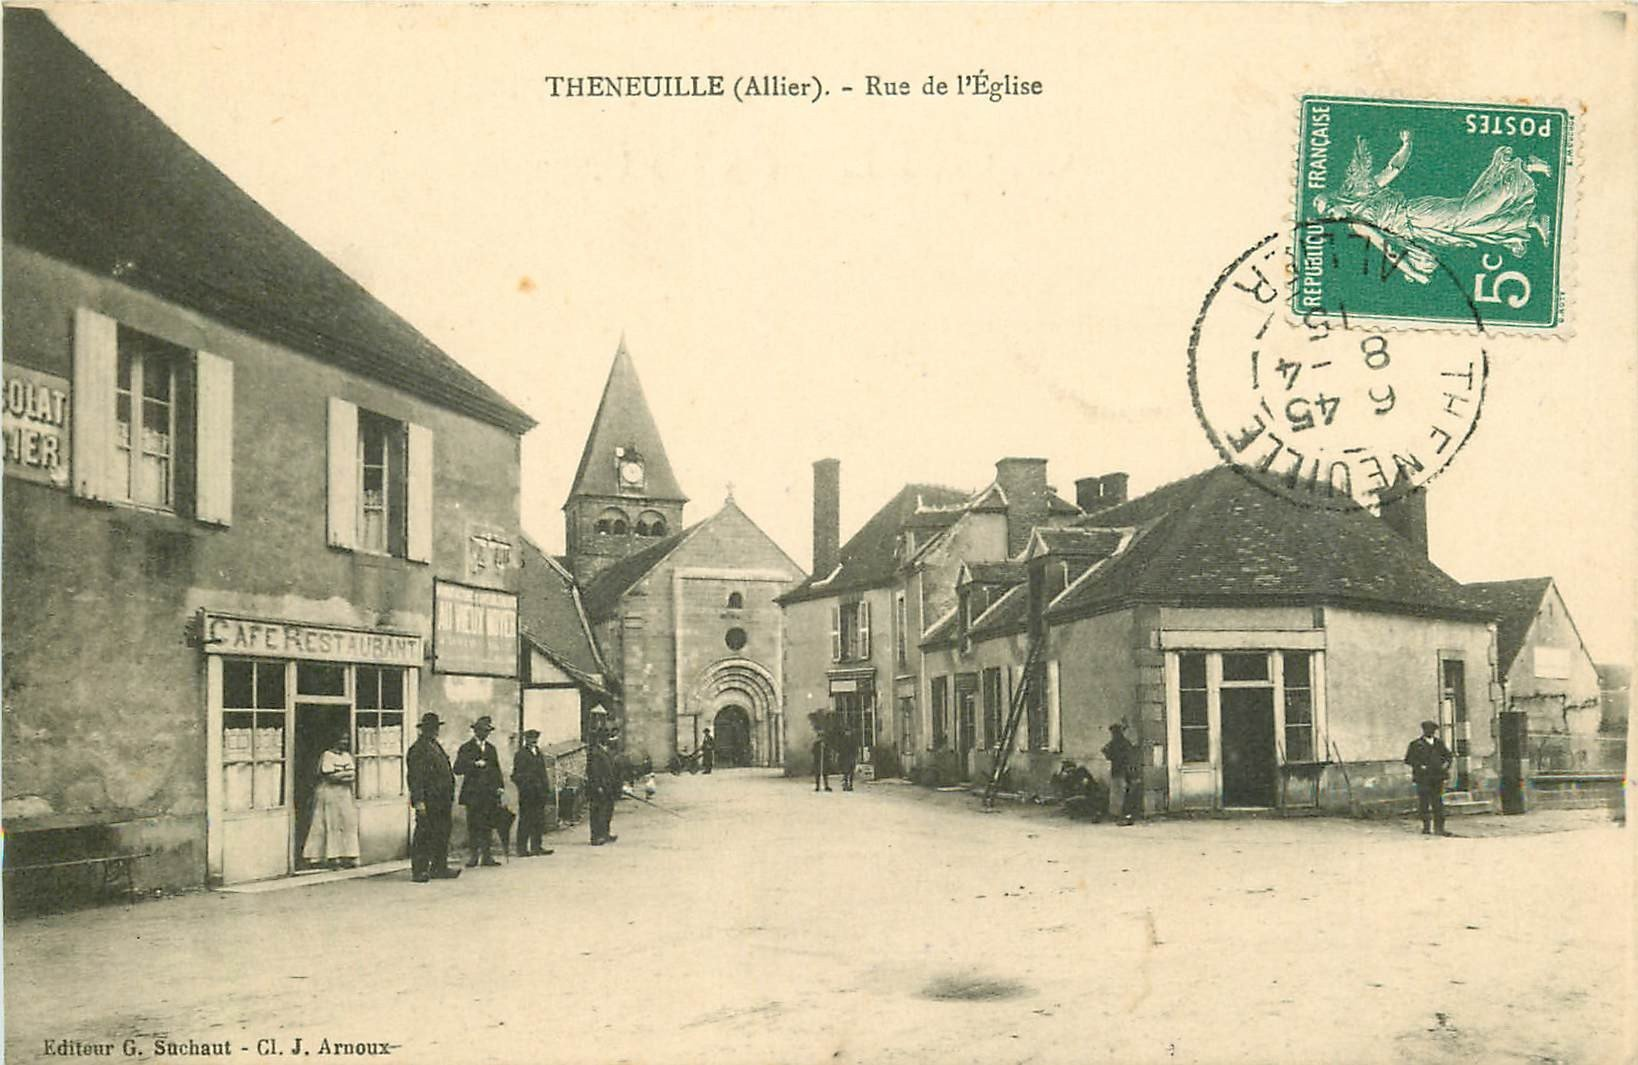 WW 03 THENEUILLE. Café Restaurant rue de l'Eglise 1915